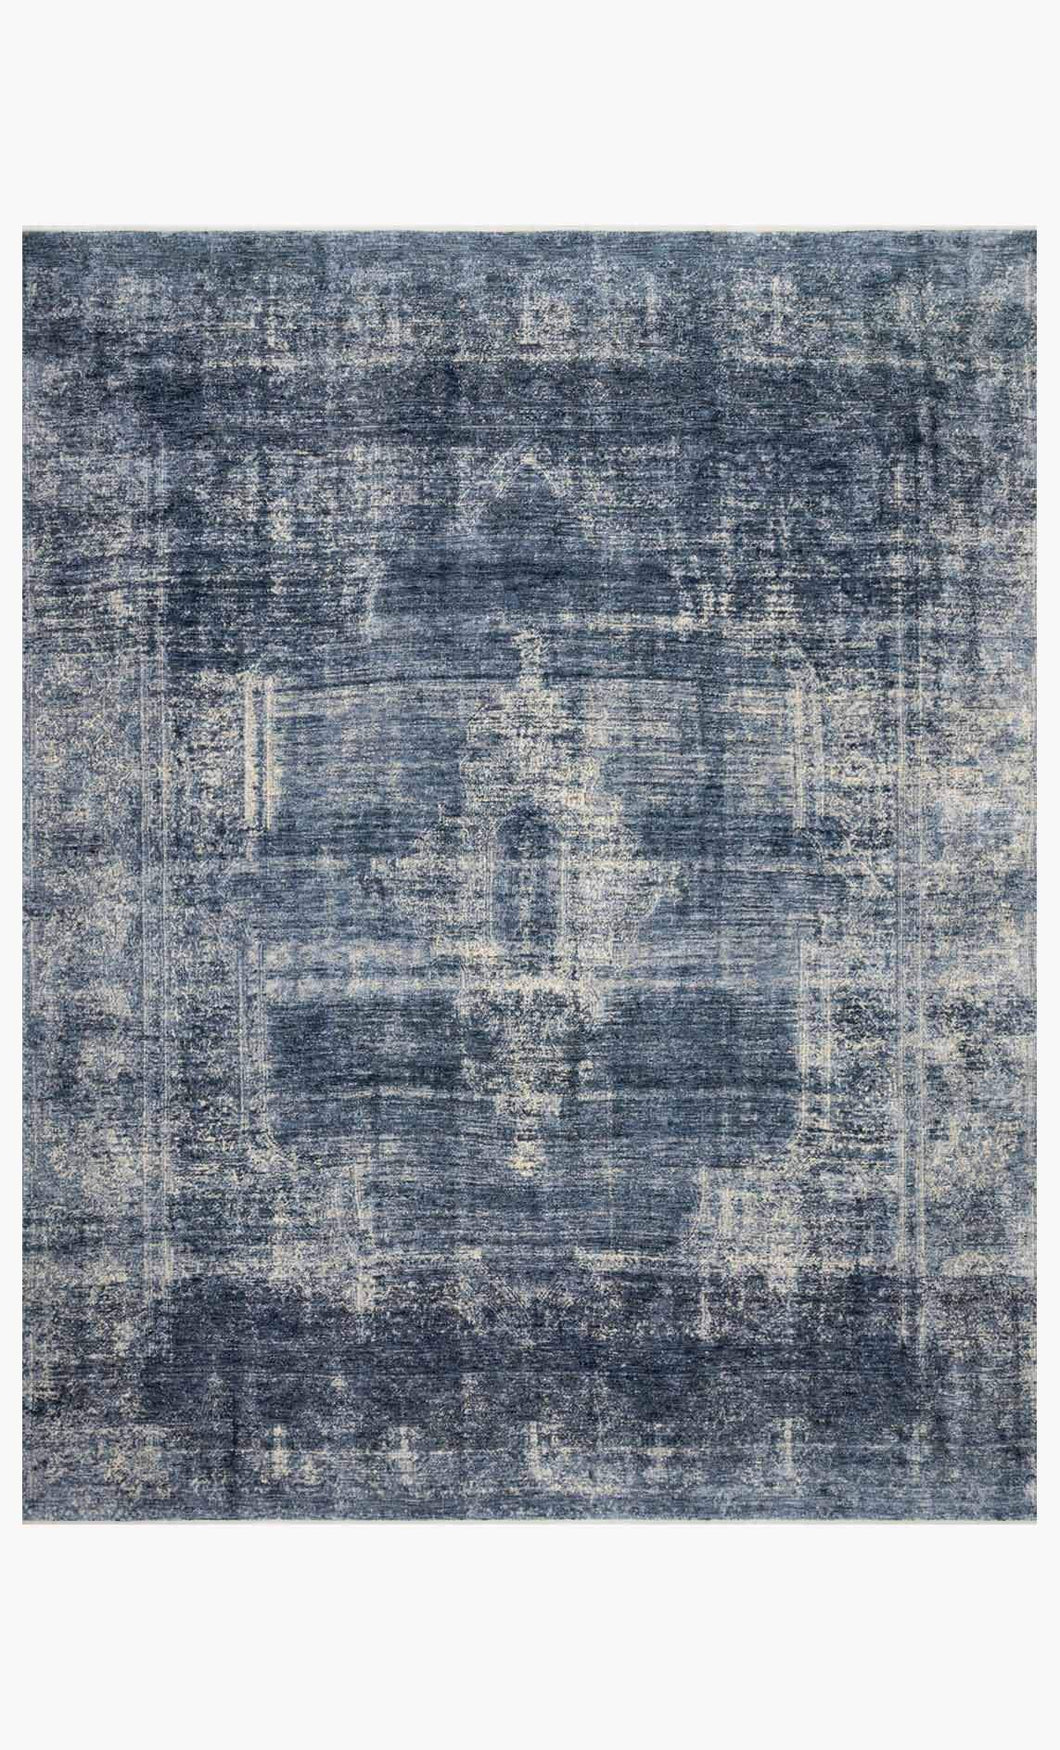 Denim Blue Rug